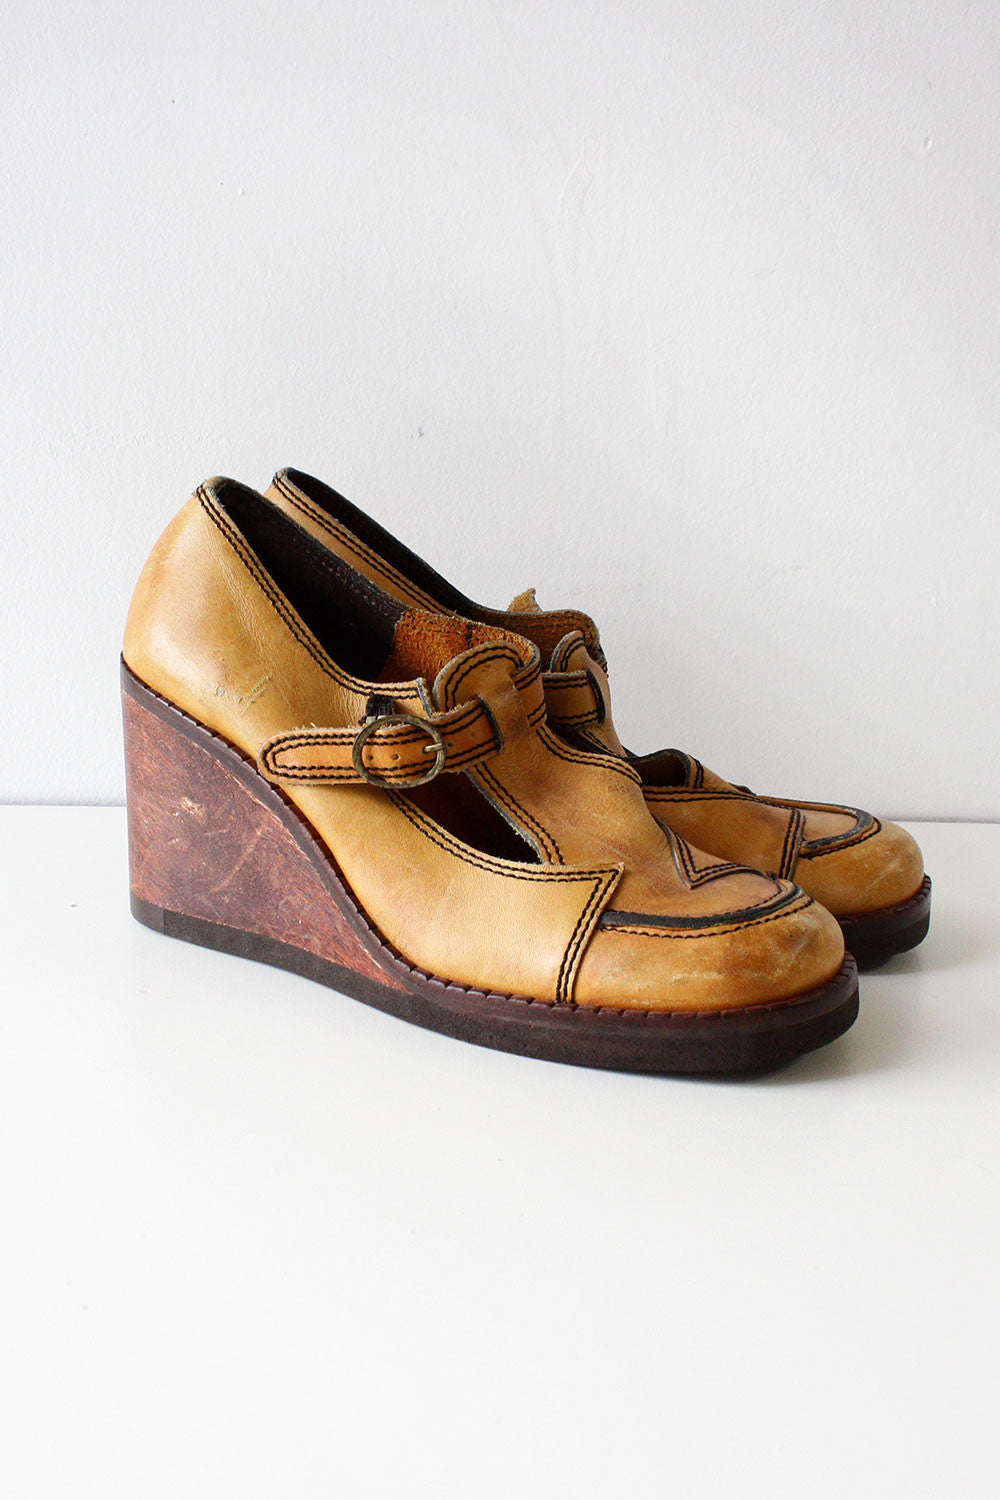 75412e068bb Ashbury Leather Wooden Wedges 8 – OMNIA